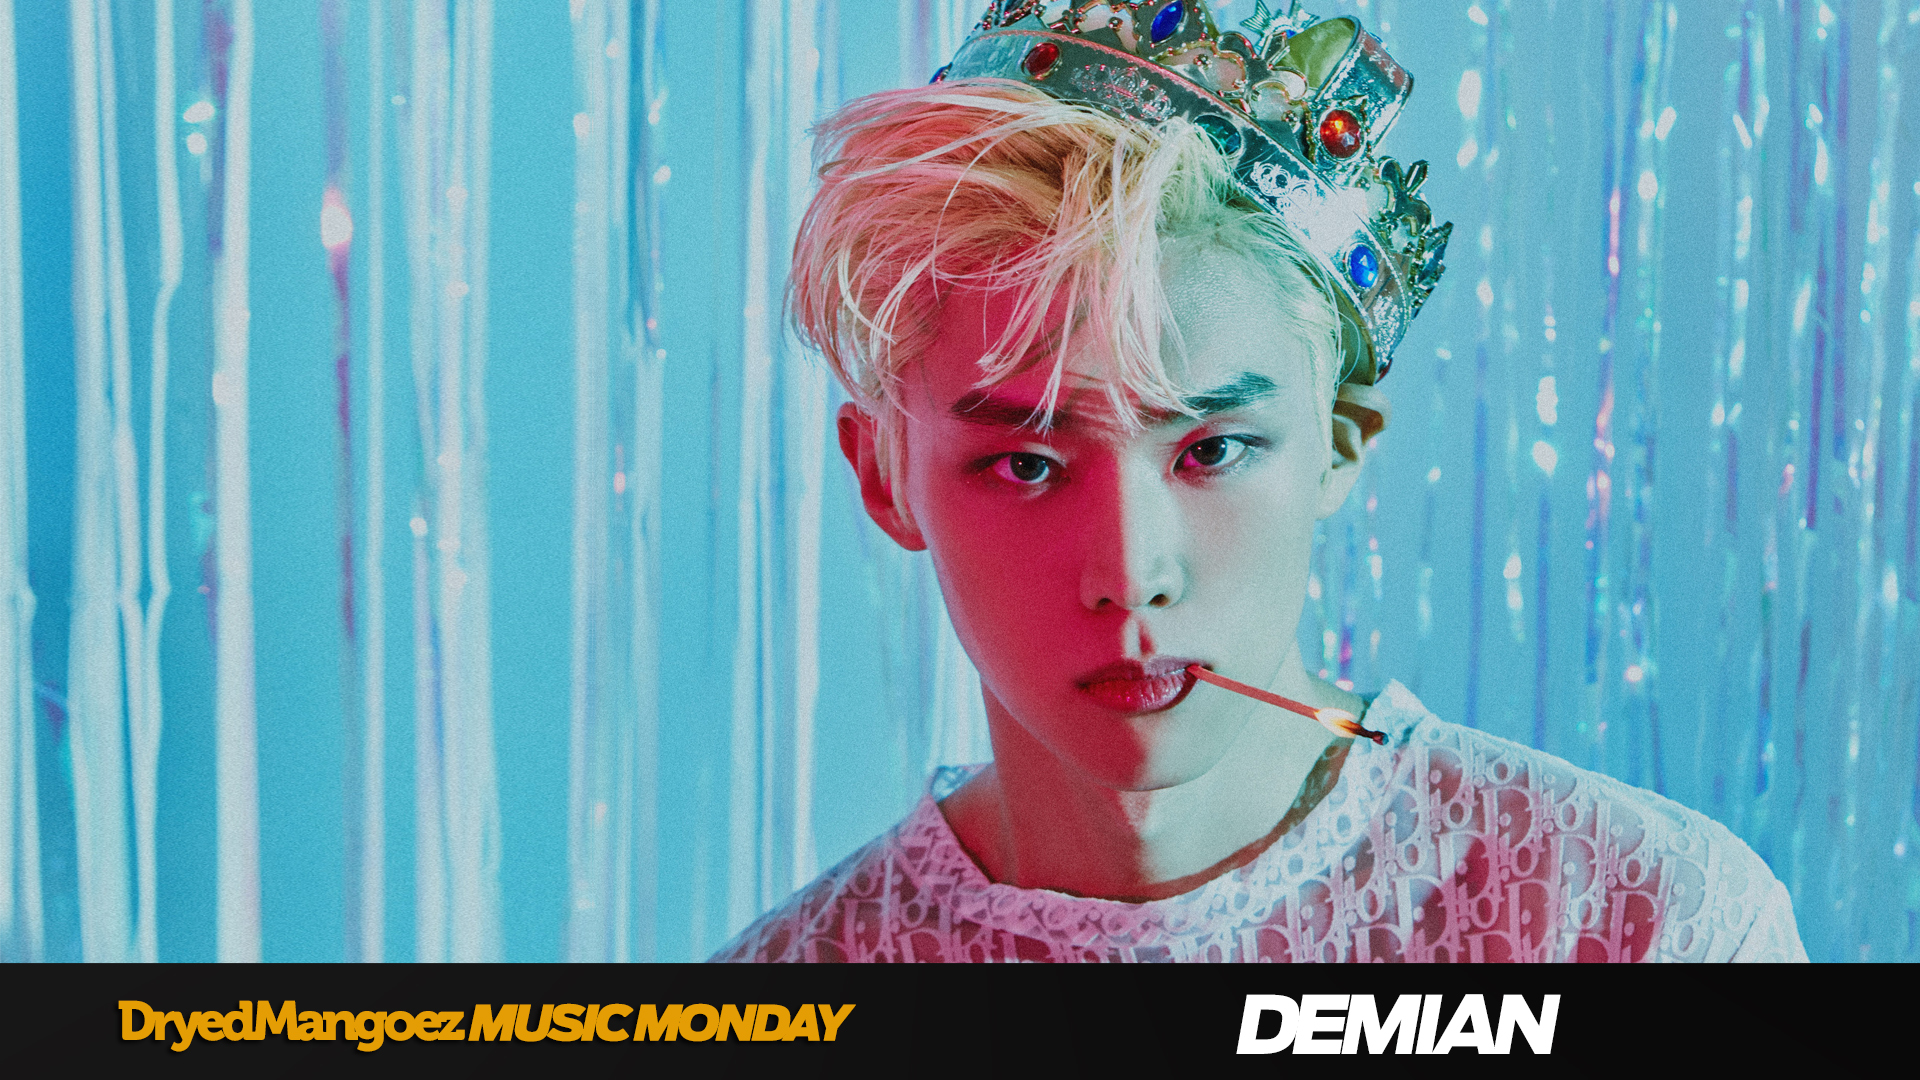 Music Monday, June 29, 2020 – Meet Demian